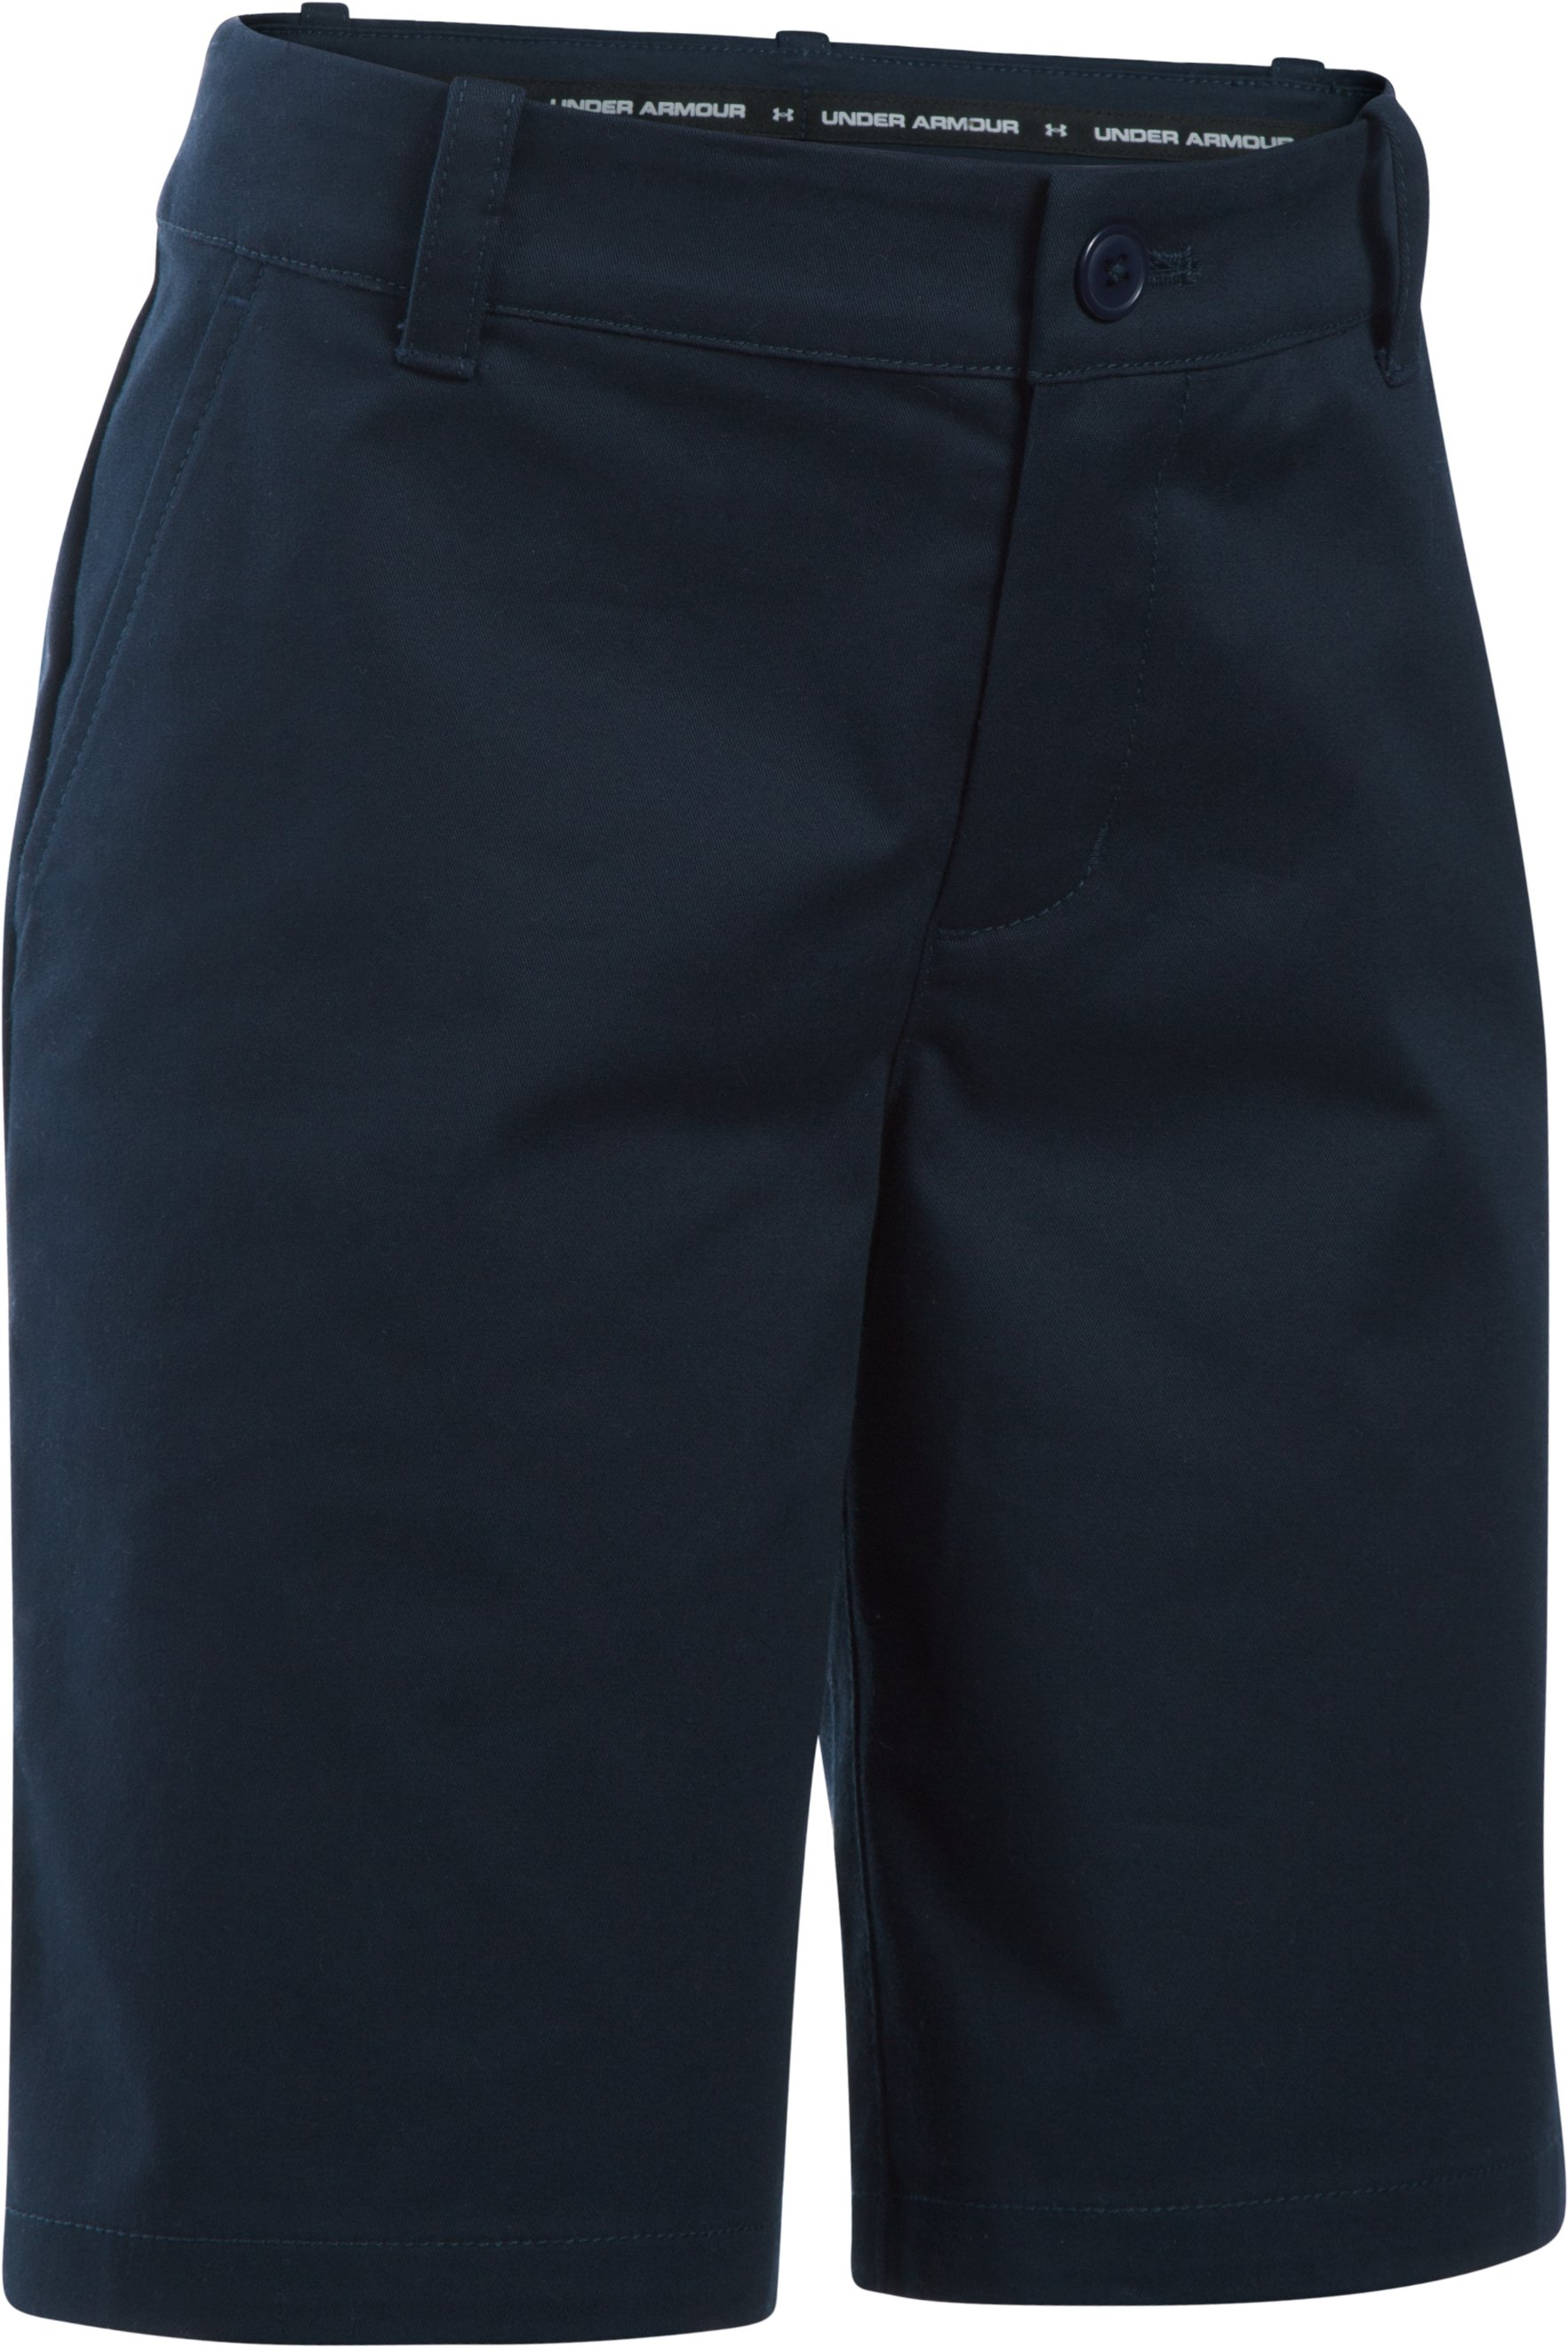 Girls' UA Uniform Chino Shorts, GLORY BLUE, zoomed image